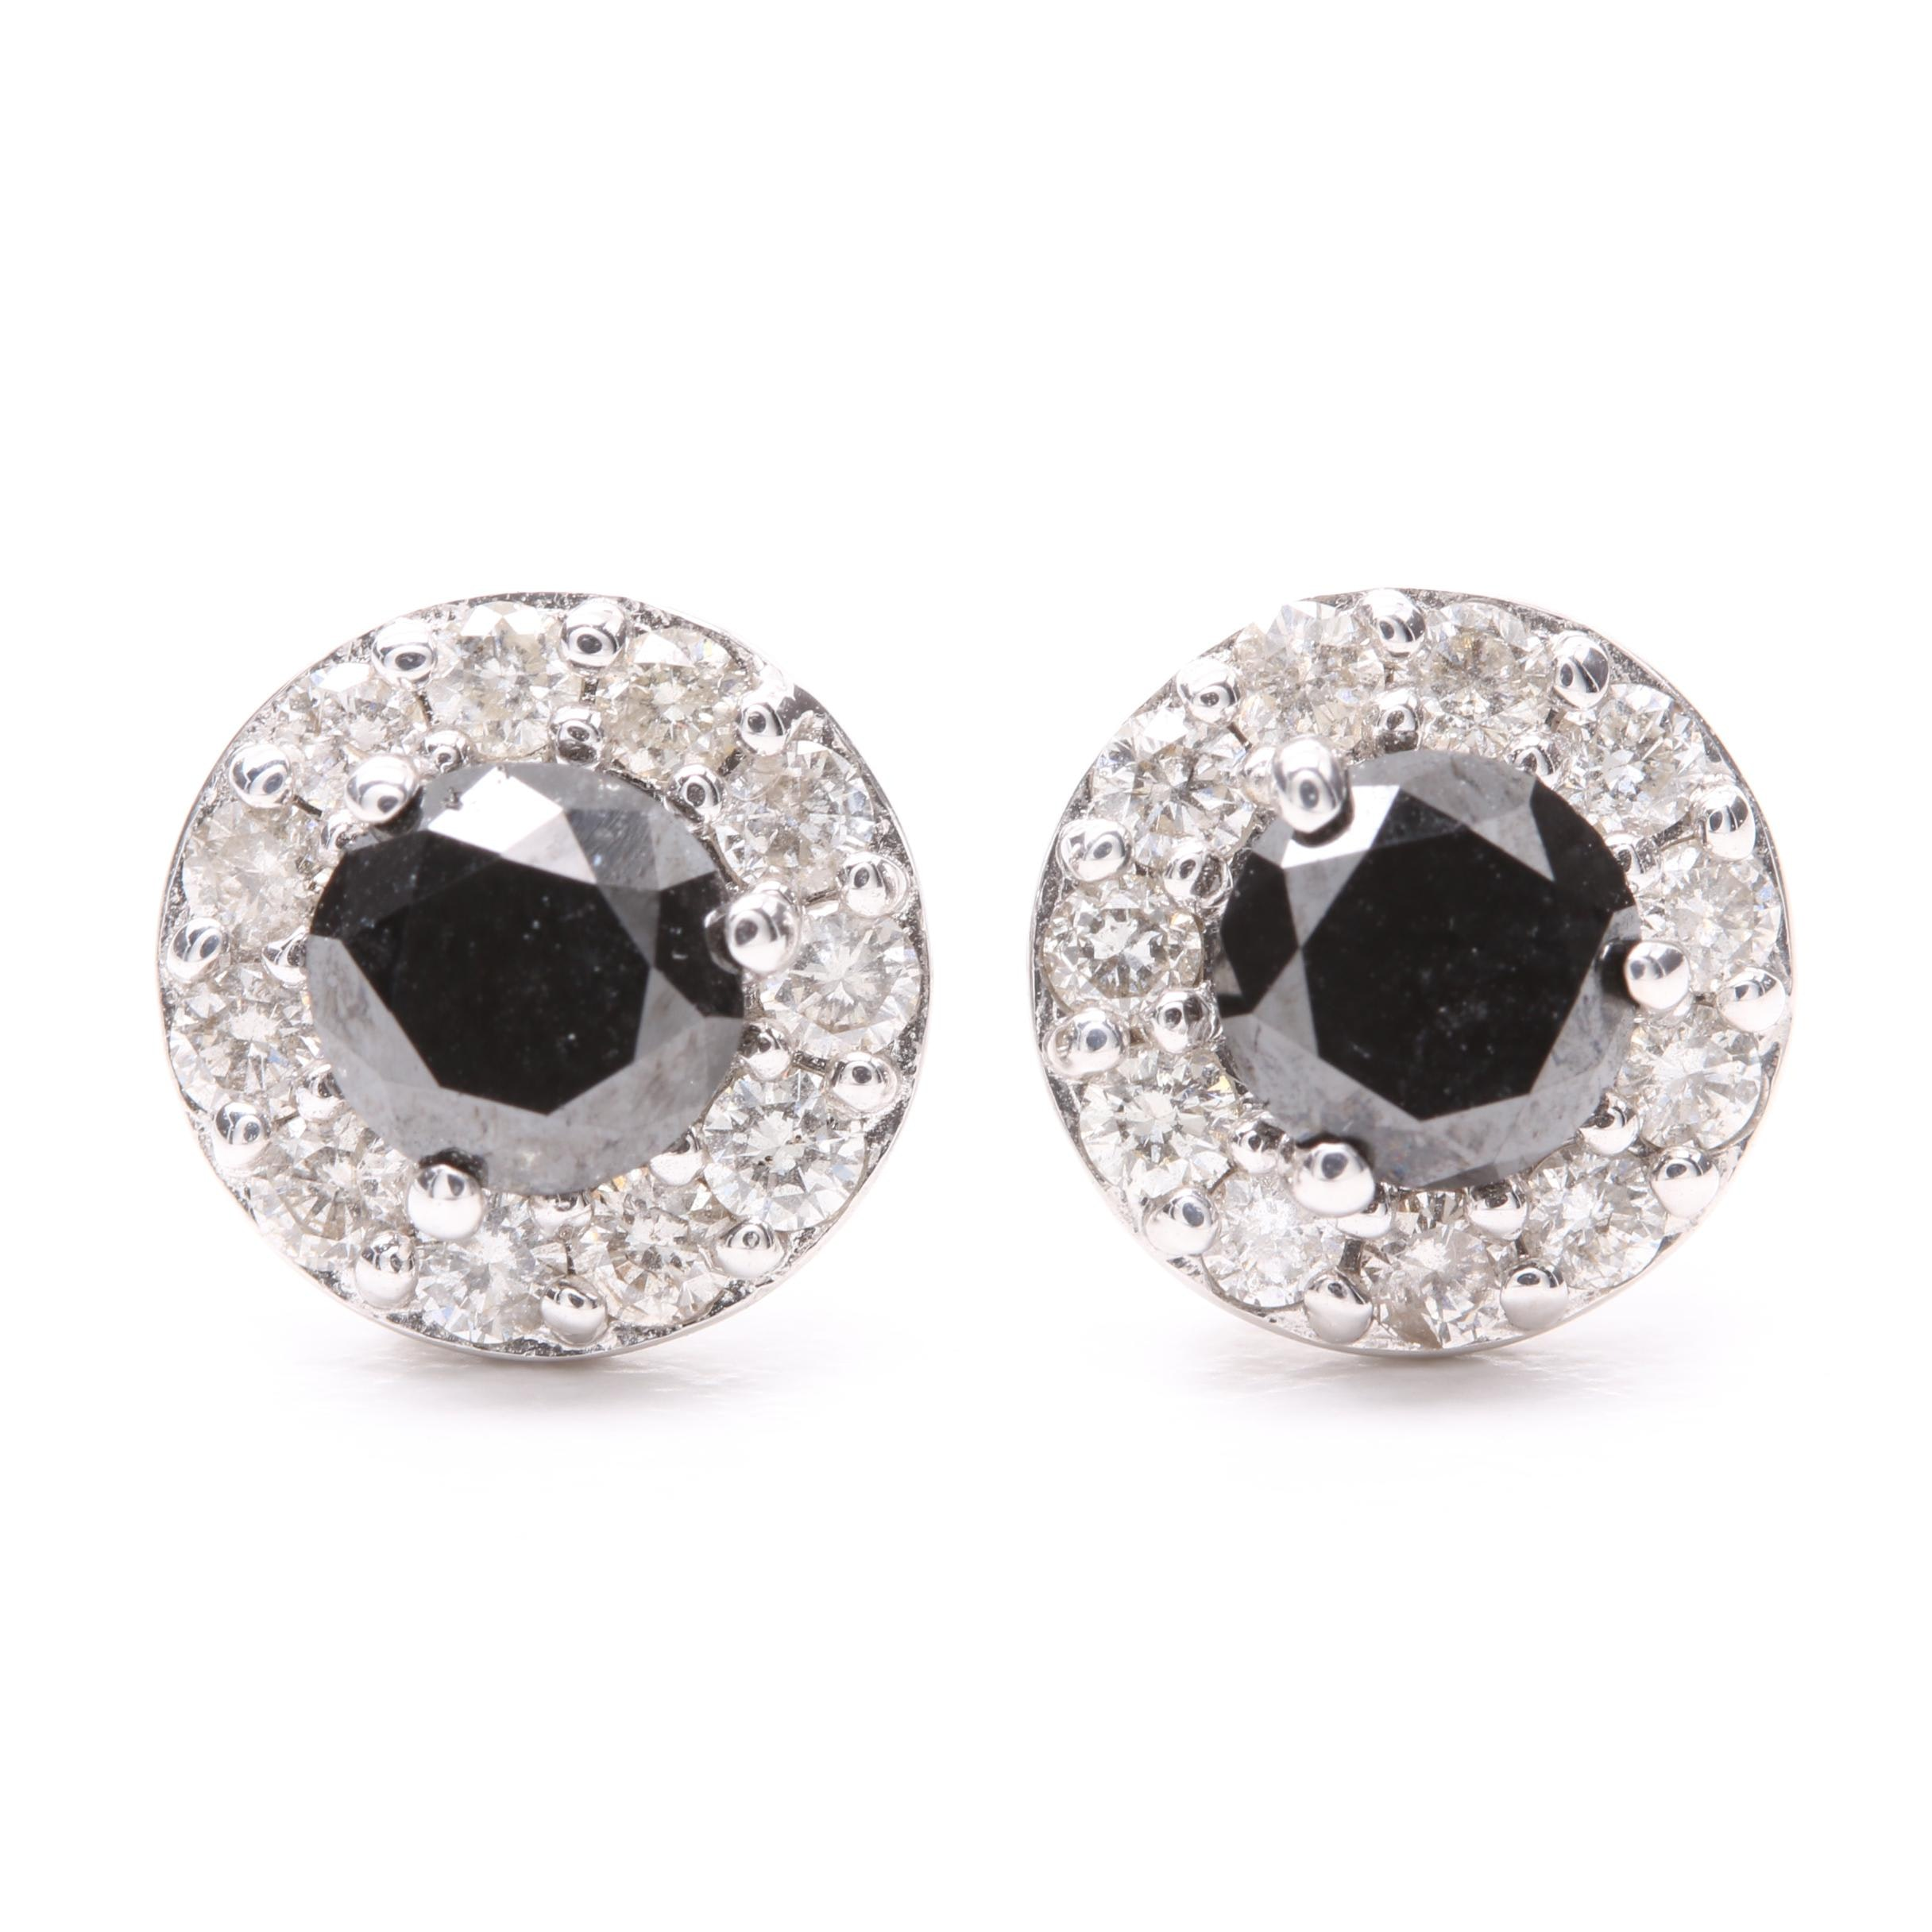 14K White Gold 1.70 CTW Diamond Earrings with Black Diamond Accents